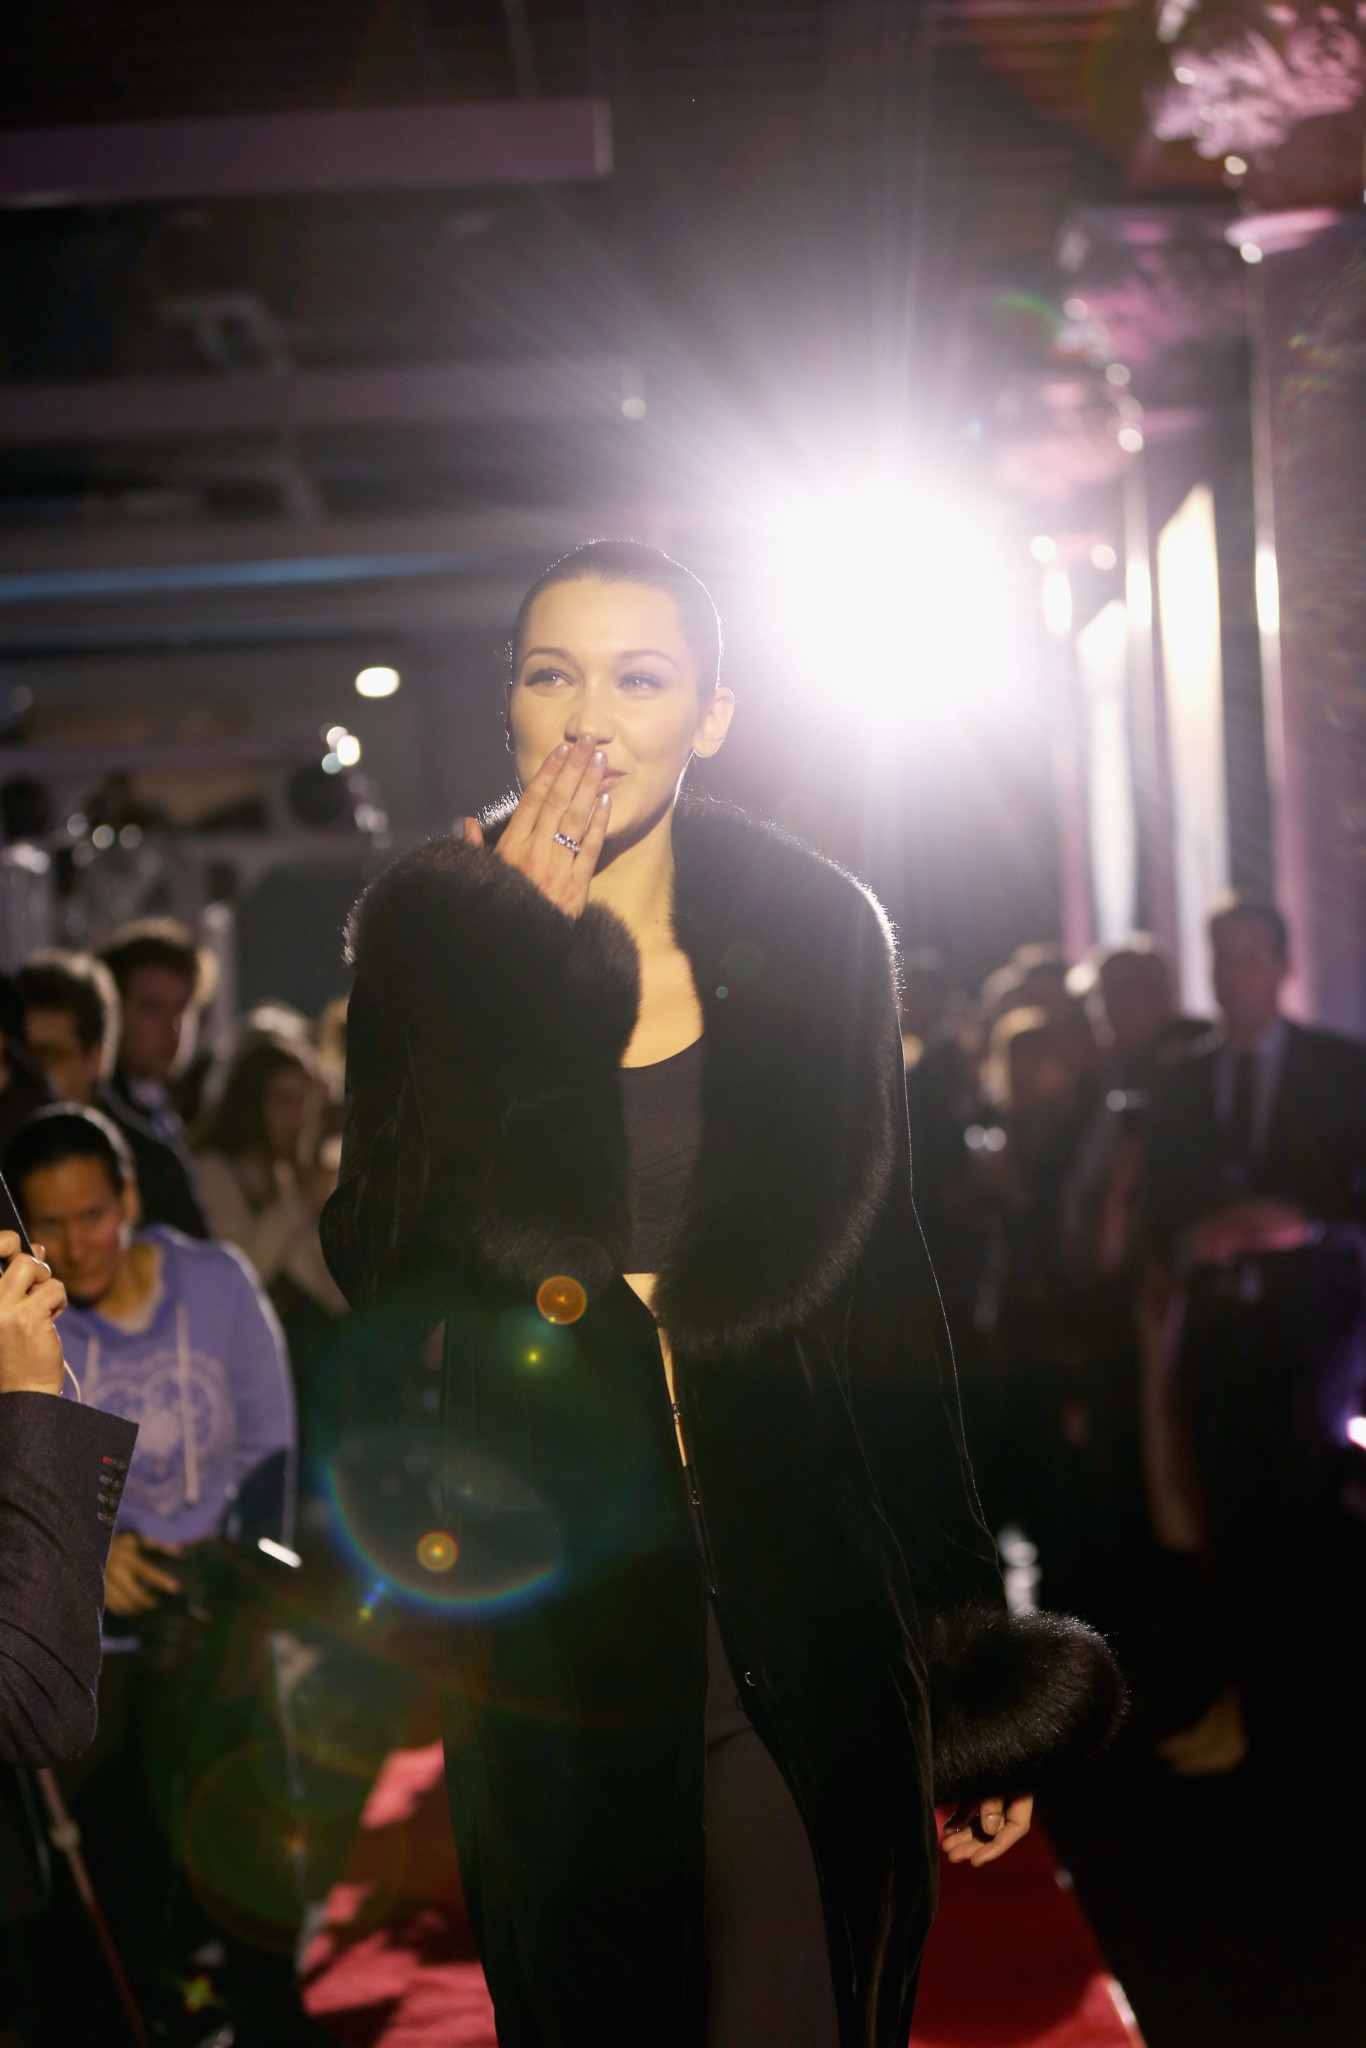 NEW YORK, NY - FEBRUARY 13: Bella Hadid attends A Fresh New Face For TAG Heuer at Equinox Bond Street on February 13, 2017 in New York City.  (Photo by Bennett Raglin/Getty Images for TAG Heuer)